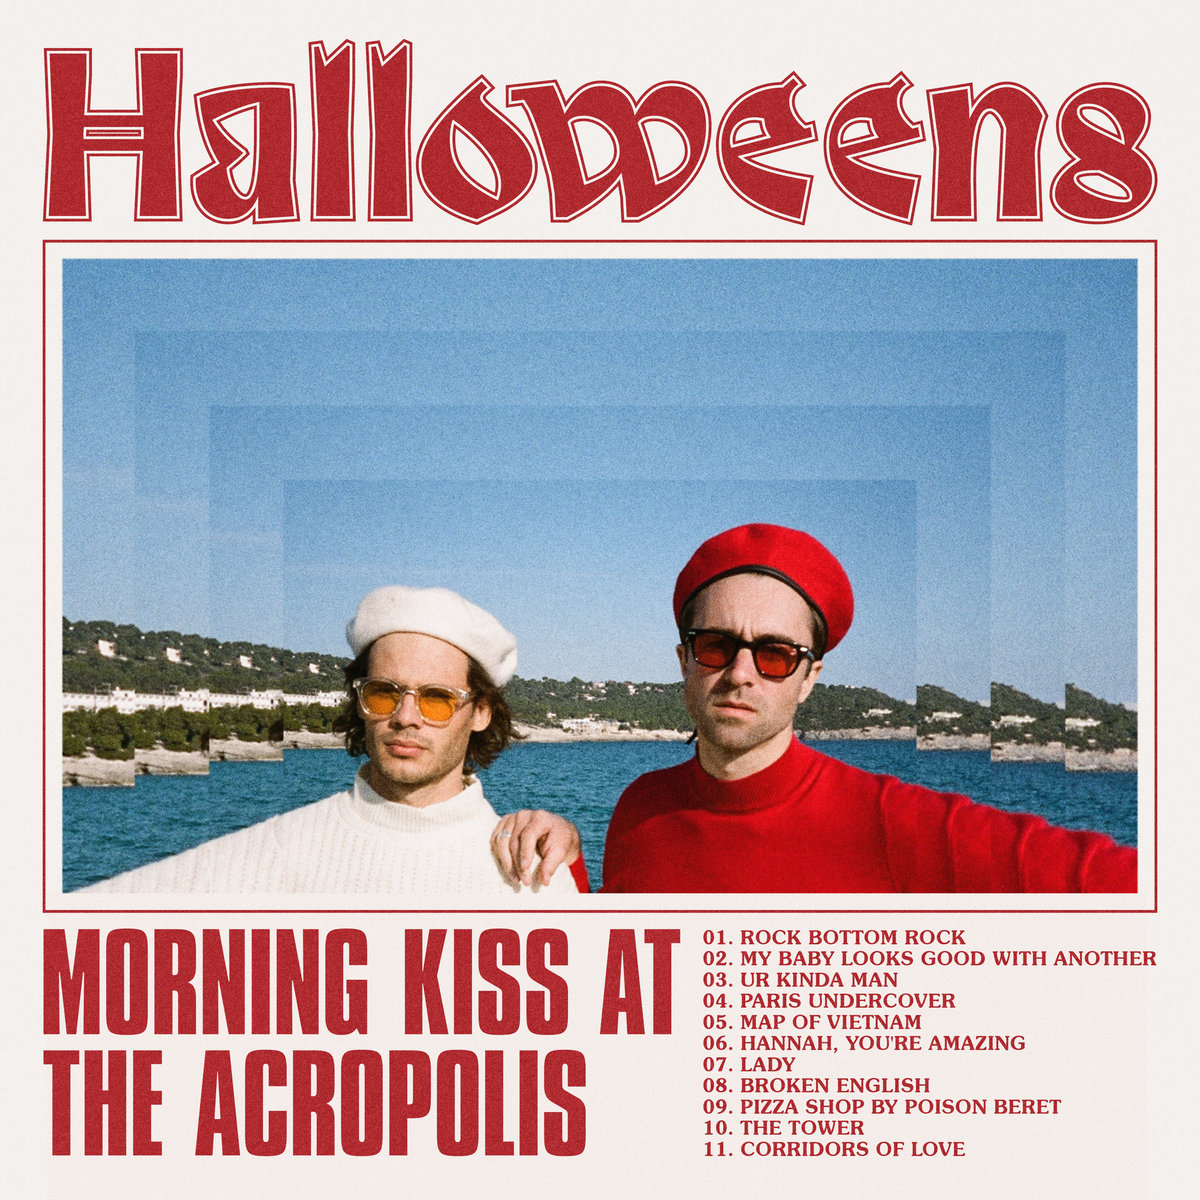 Morning Kiss At The Acropolis | Halloweens